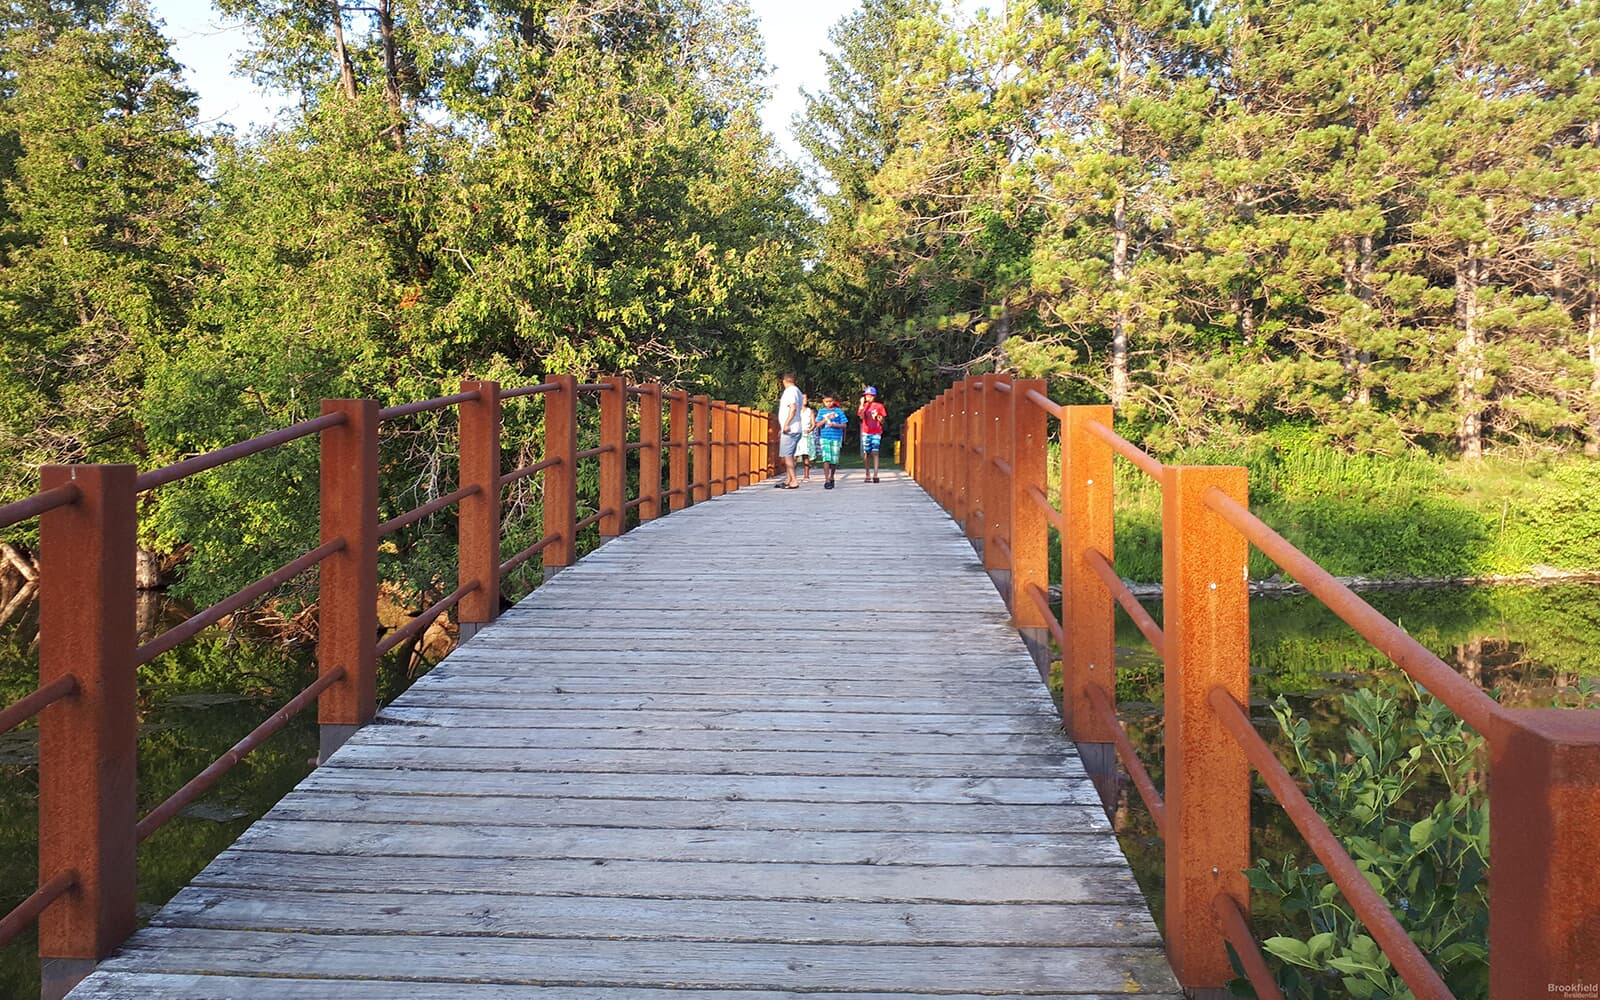 Bridge at Park with Kids and Adult Walking in Baxter, Ontario.